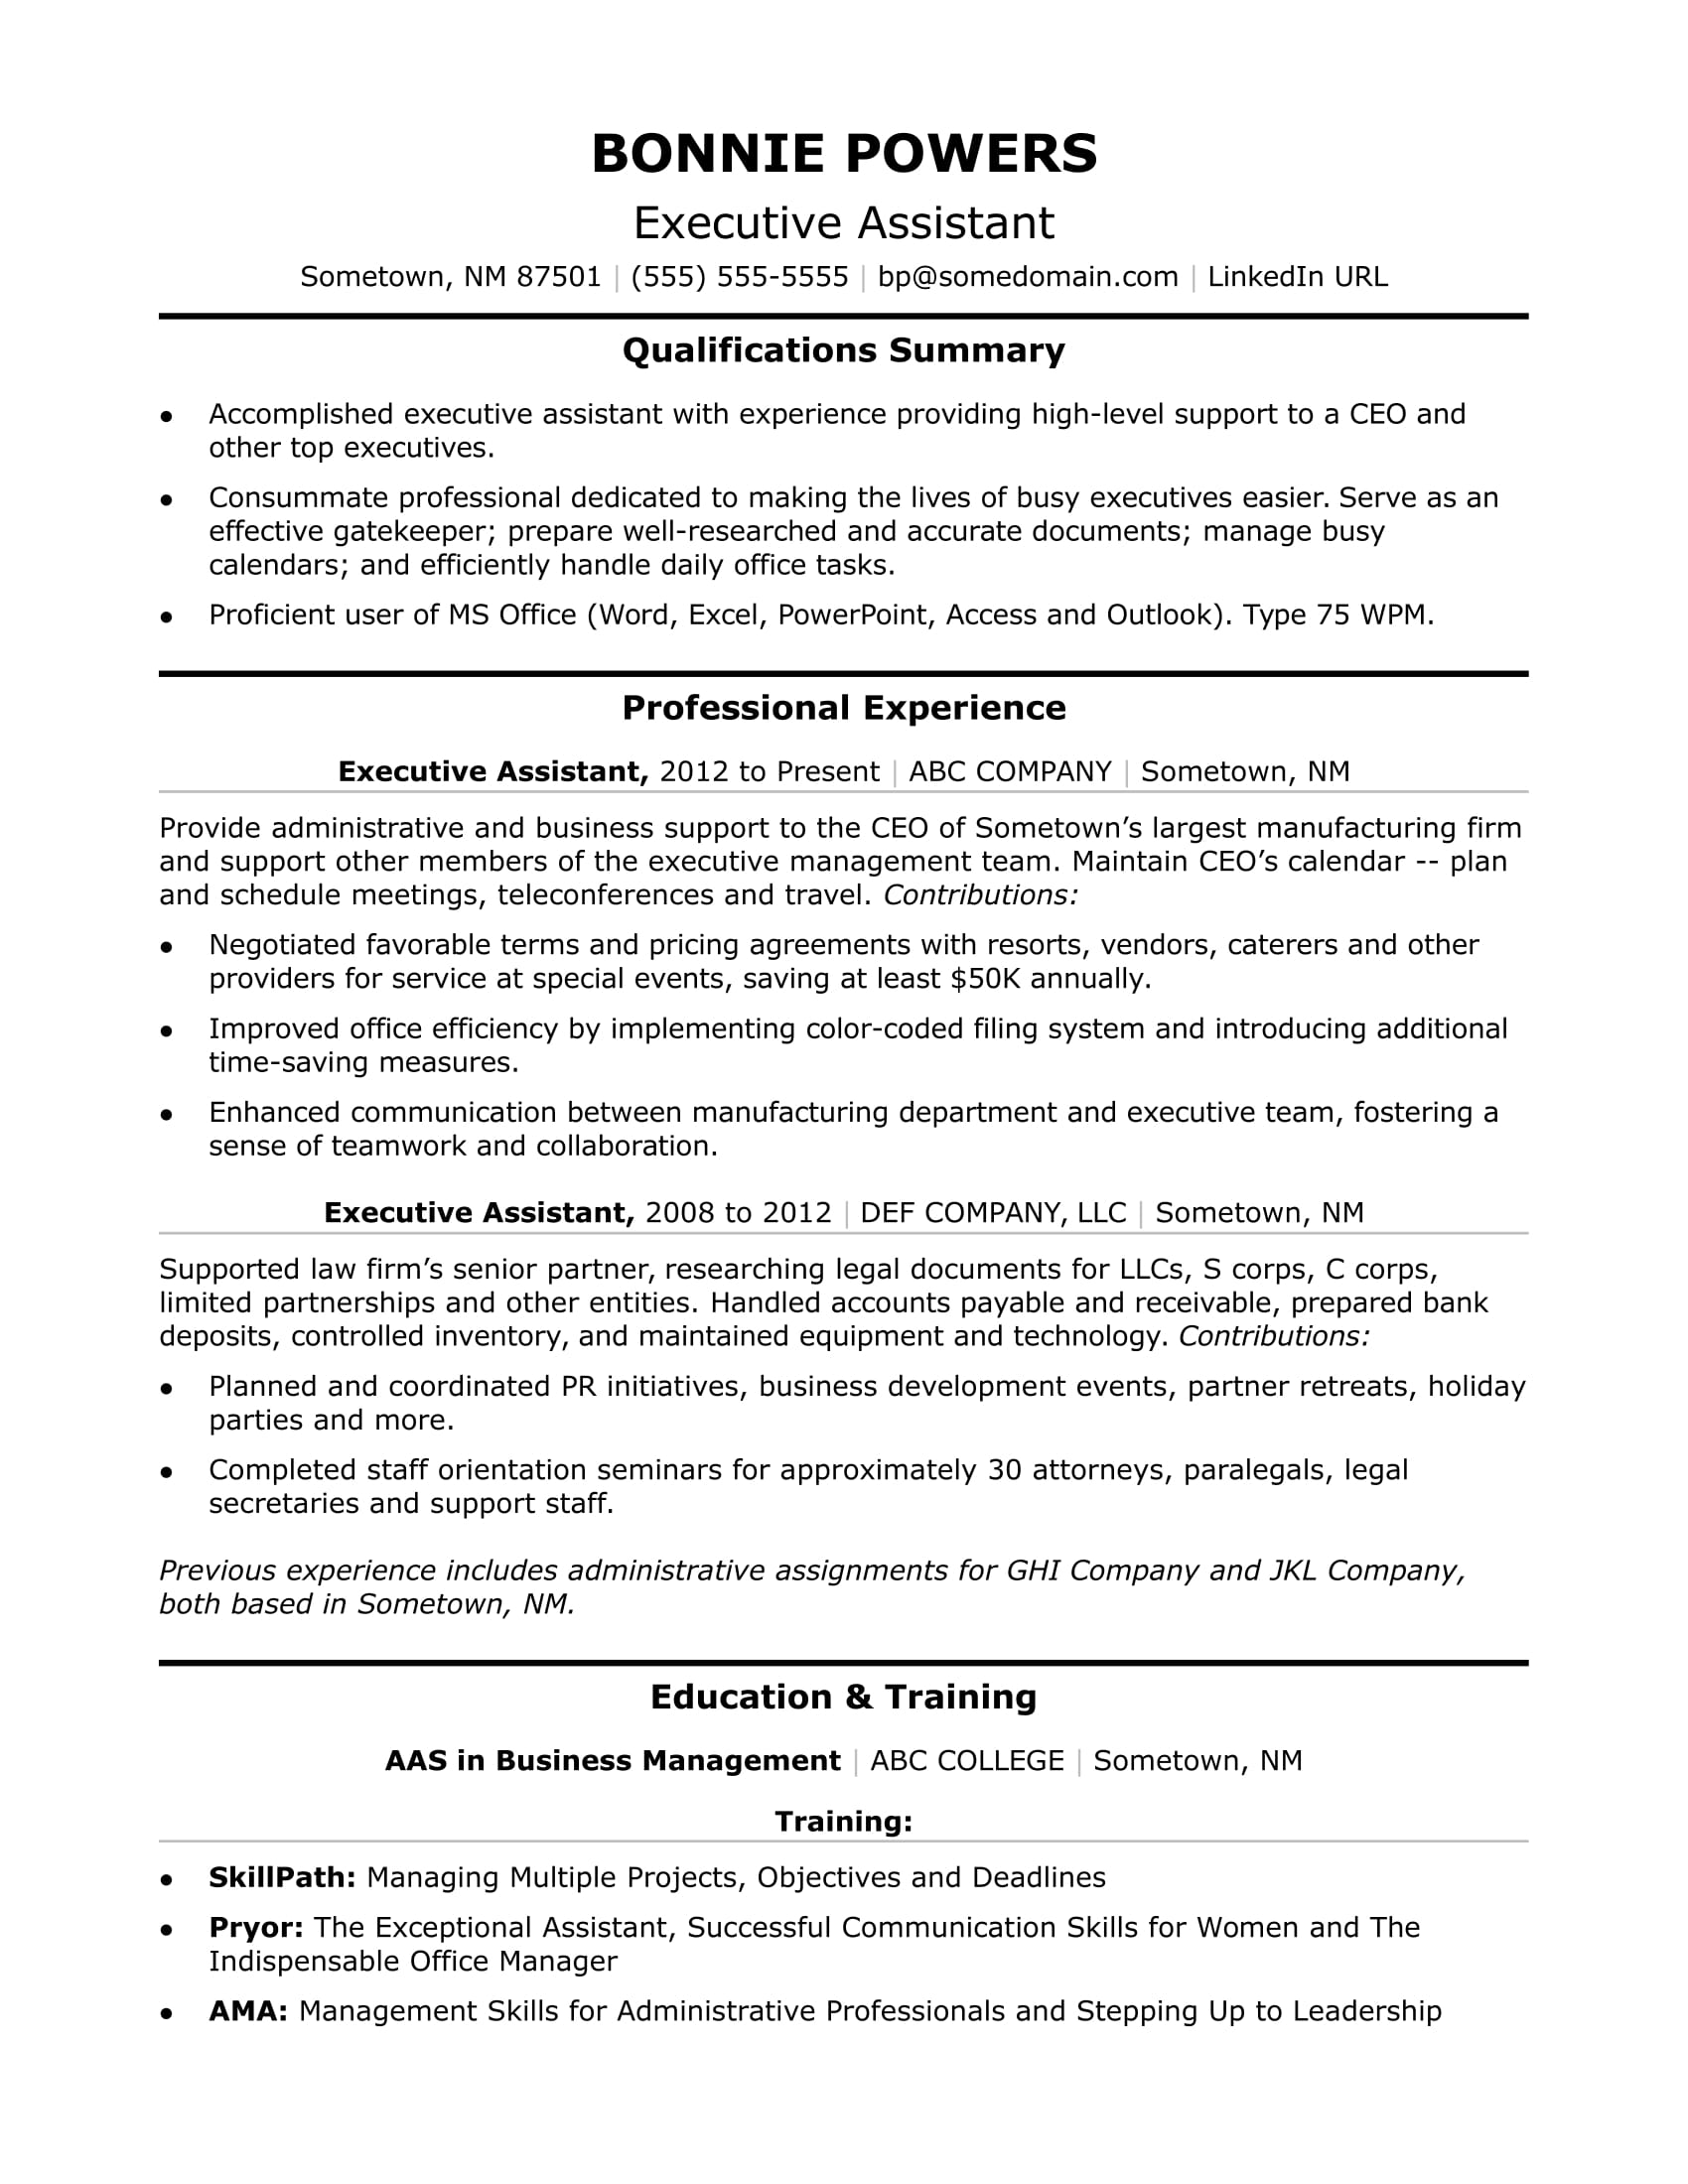 executive administrative assistant resume sample monster professional biomedical engineer Resume Professional Administrative Assistant Resume